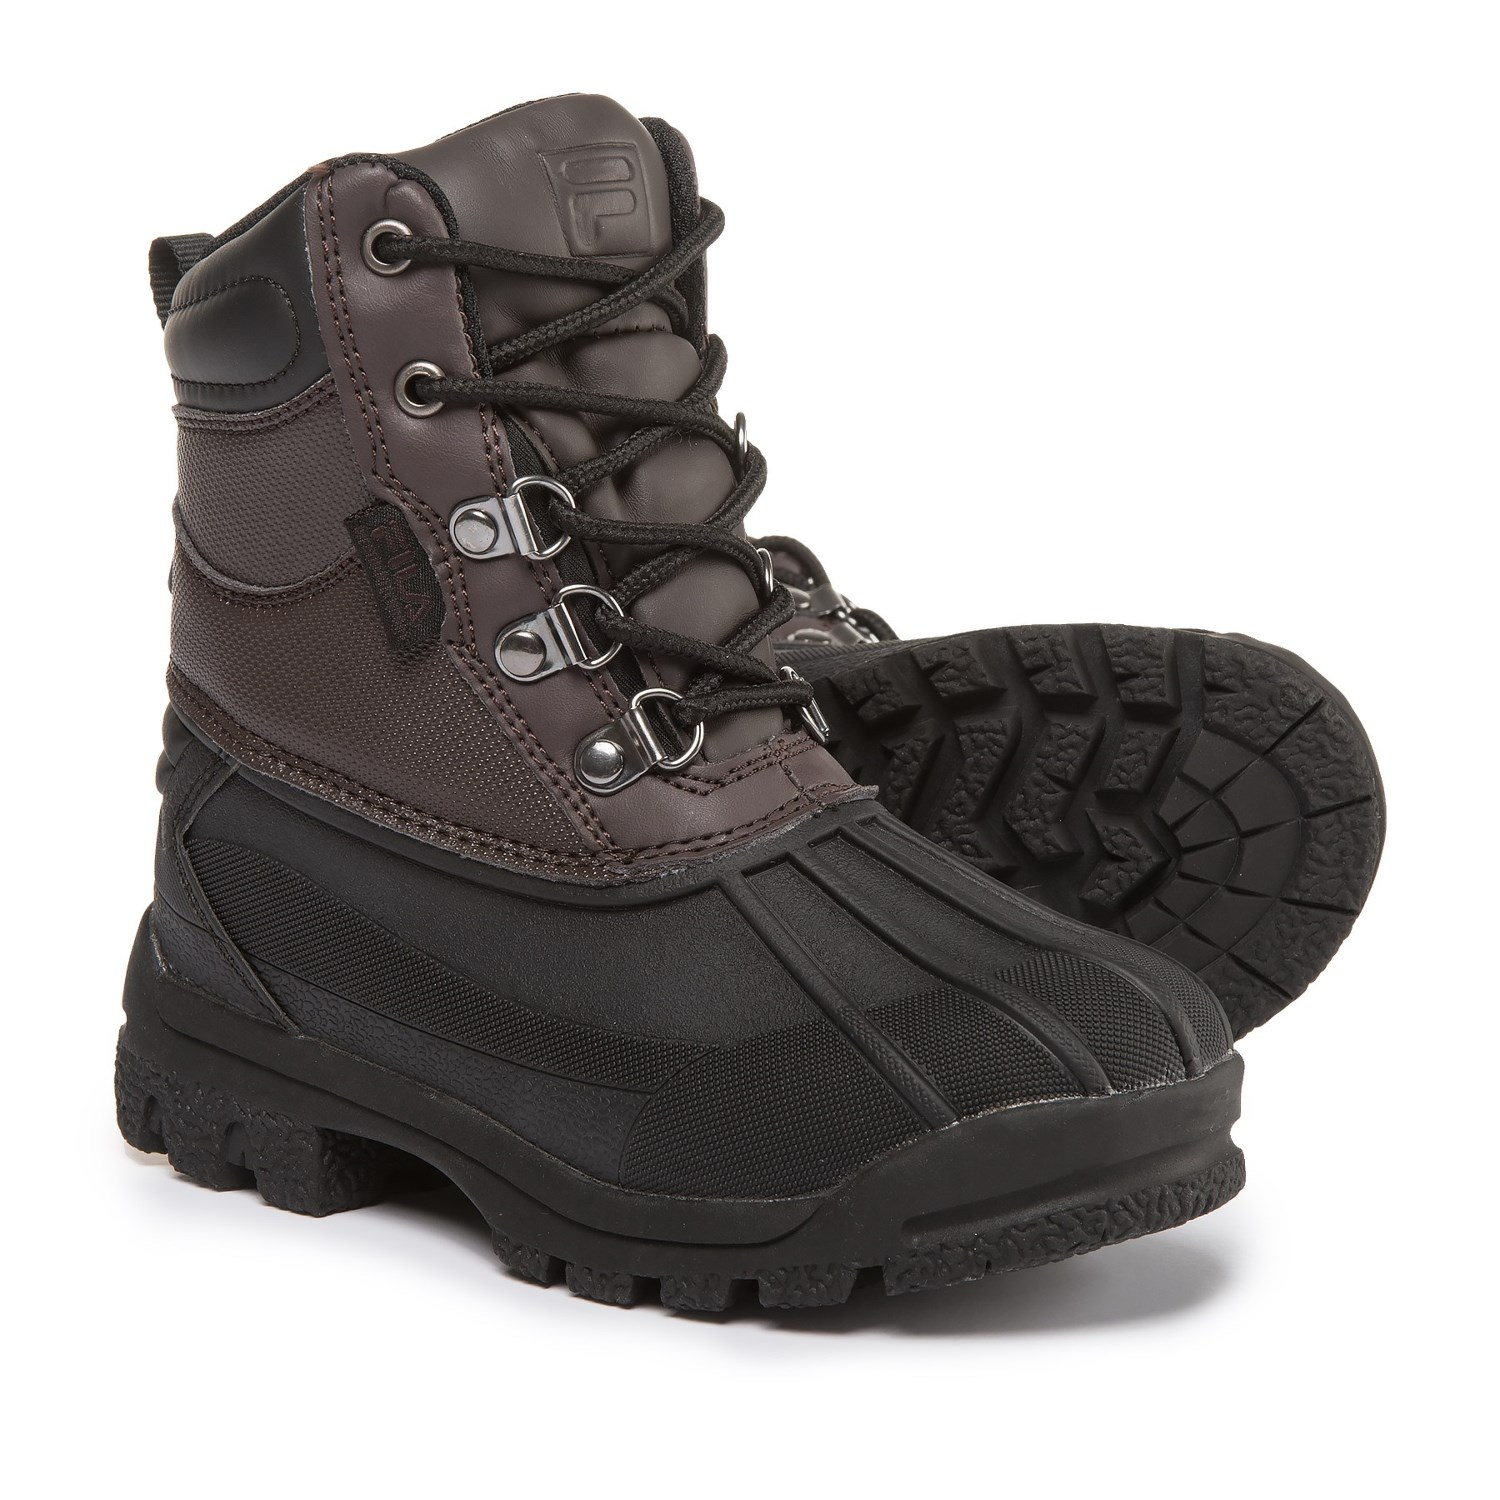 Fila Weathertech Extreme Boots (For Boys) in Espresso/Black